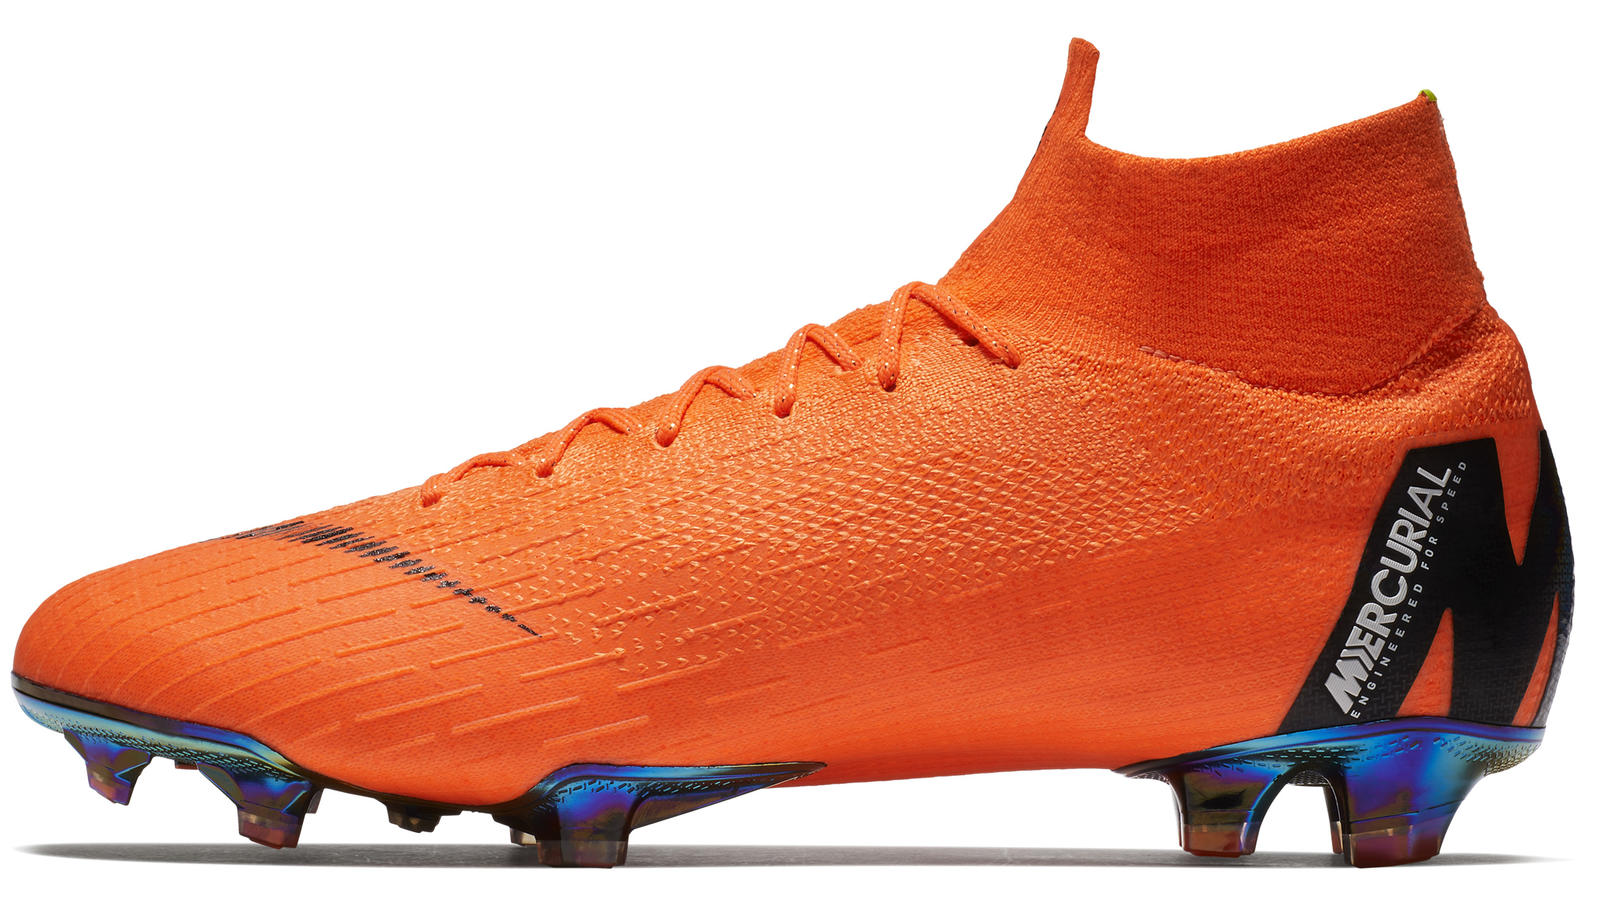 bab9b5517 Introducing the Mercurial Superfly and Vapor 360  Fast By Nature ...